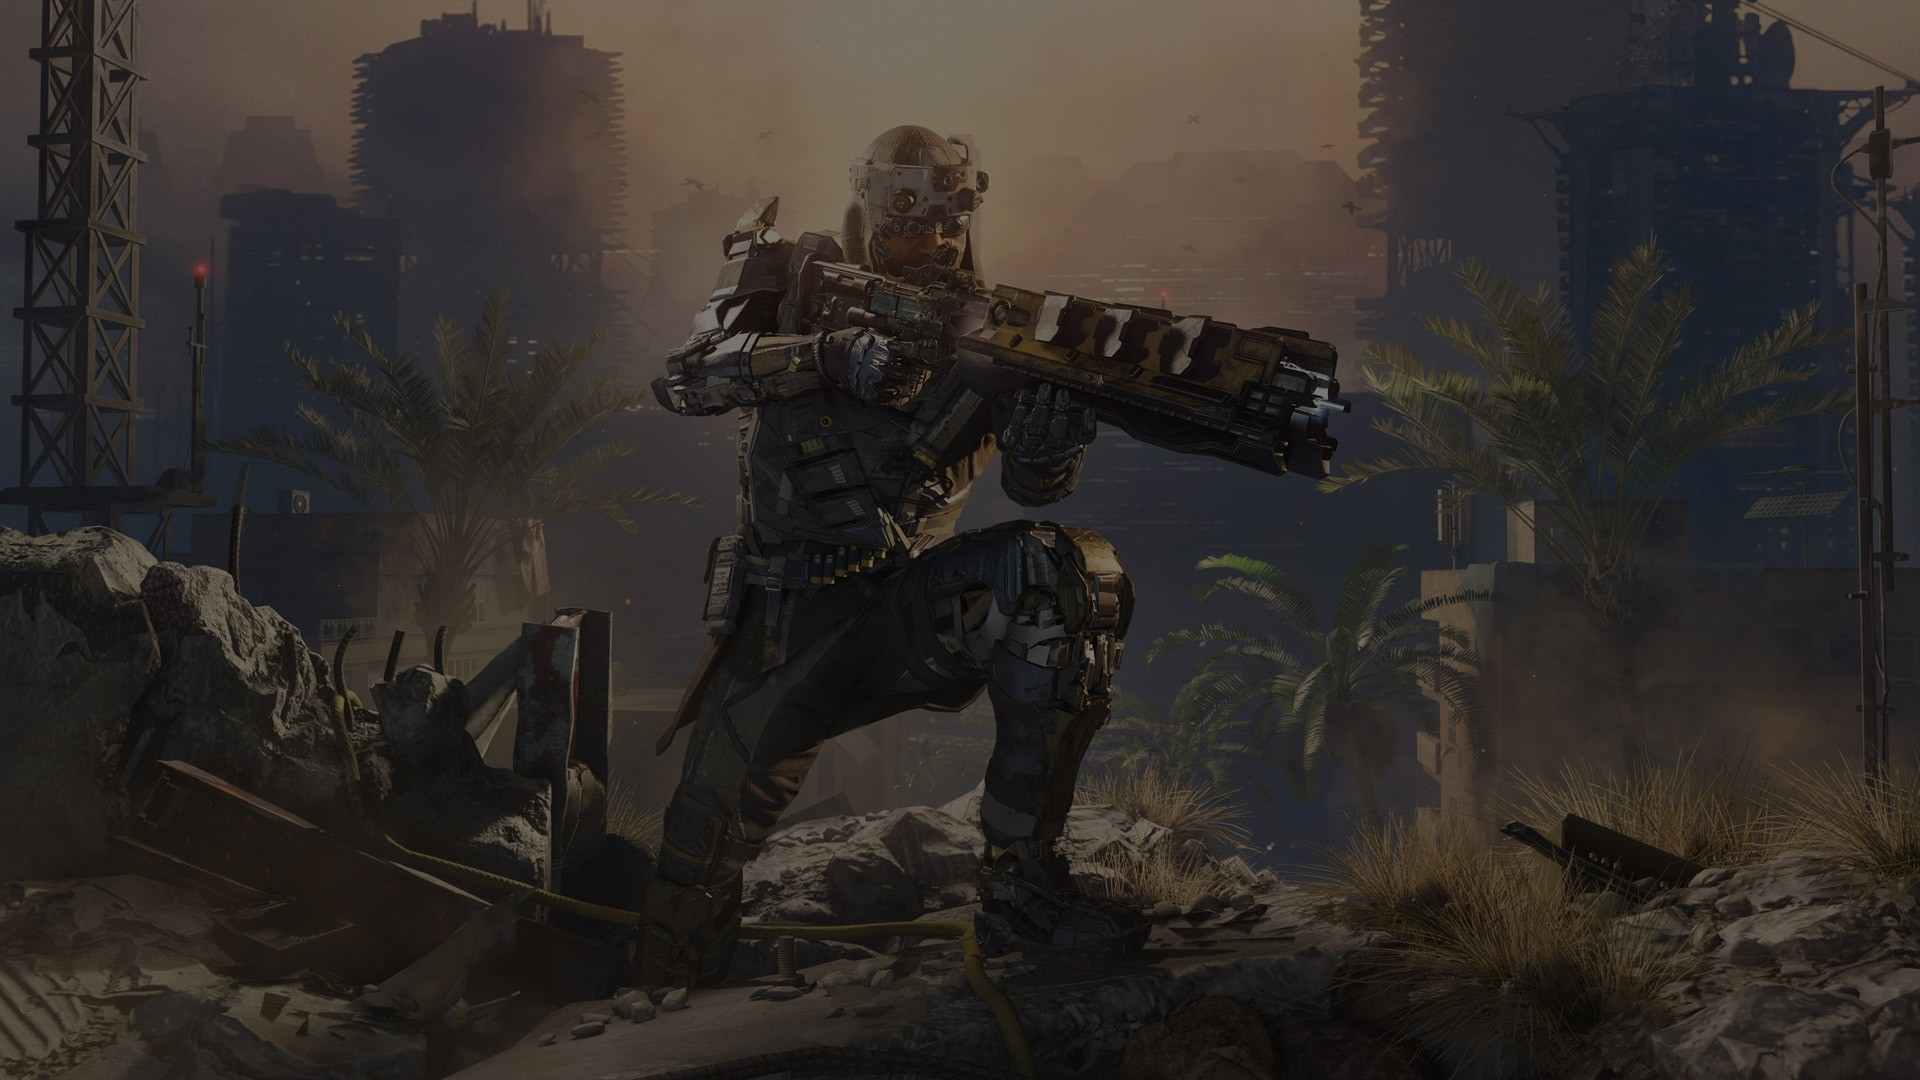 HD Wallpapers Group Call of Duty Black Ops Specialist Prophet